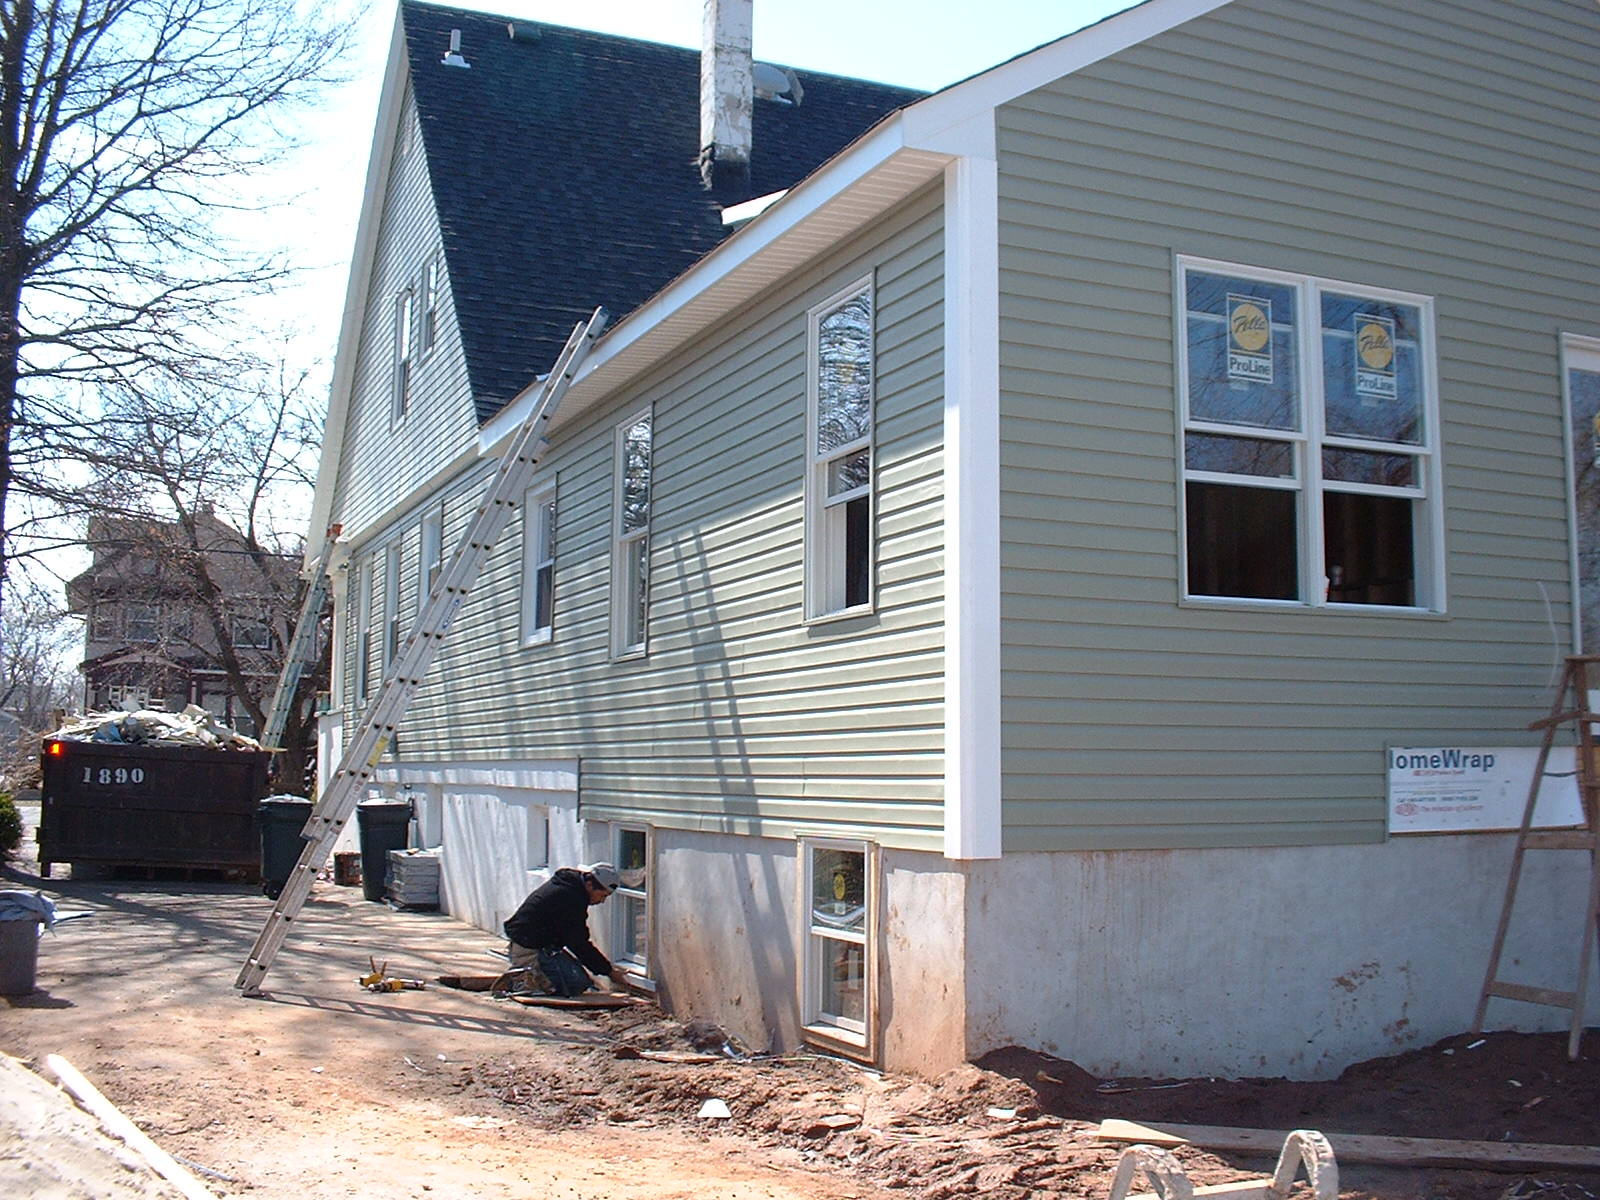 The siding is about finished now.There will be a small deck at the back of the house.